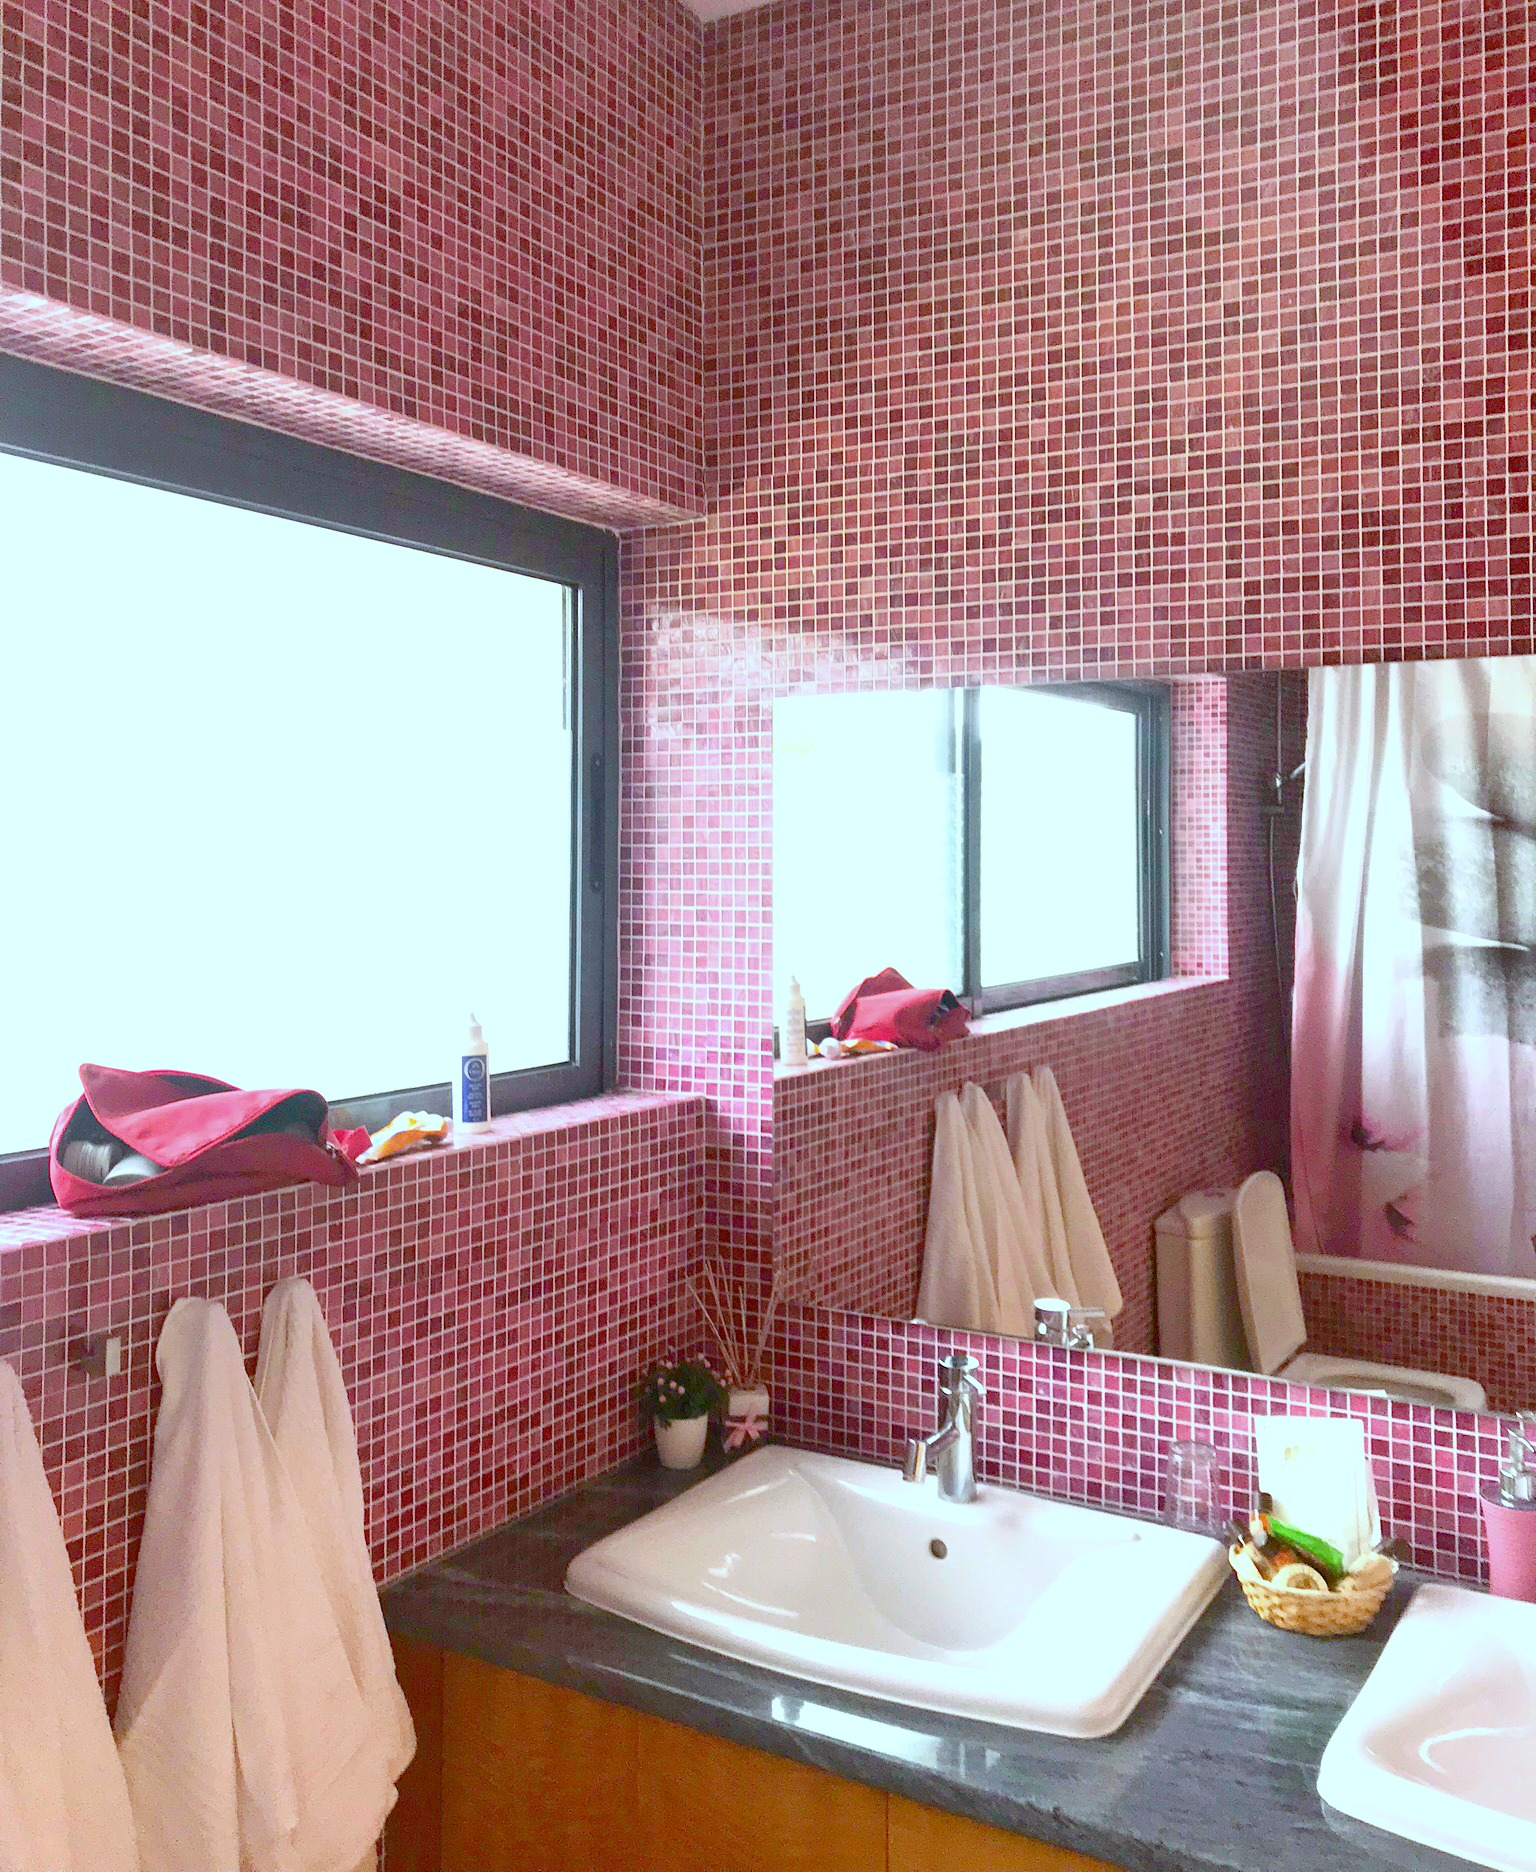 beautiful purple tiled bathroom at Lodge Natur Zen Sao Miguel Azors